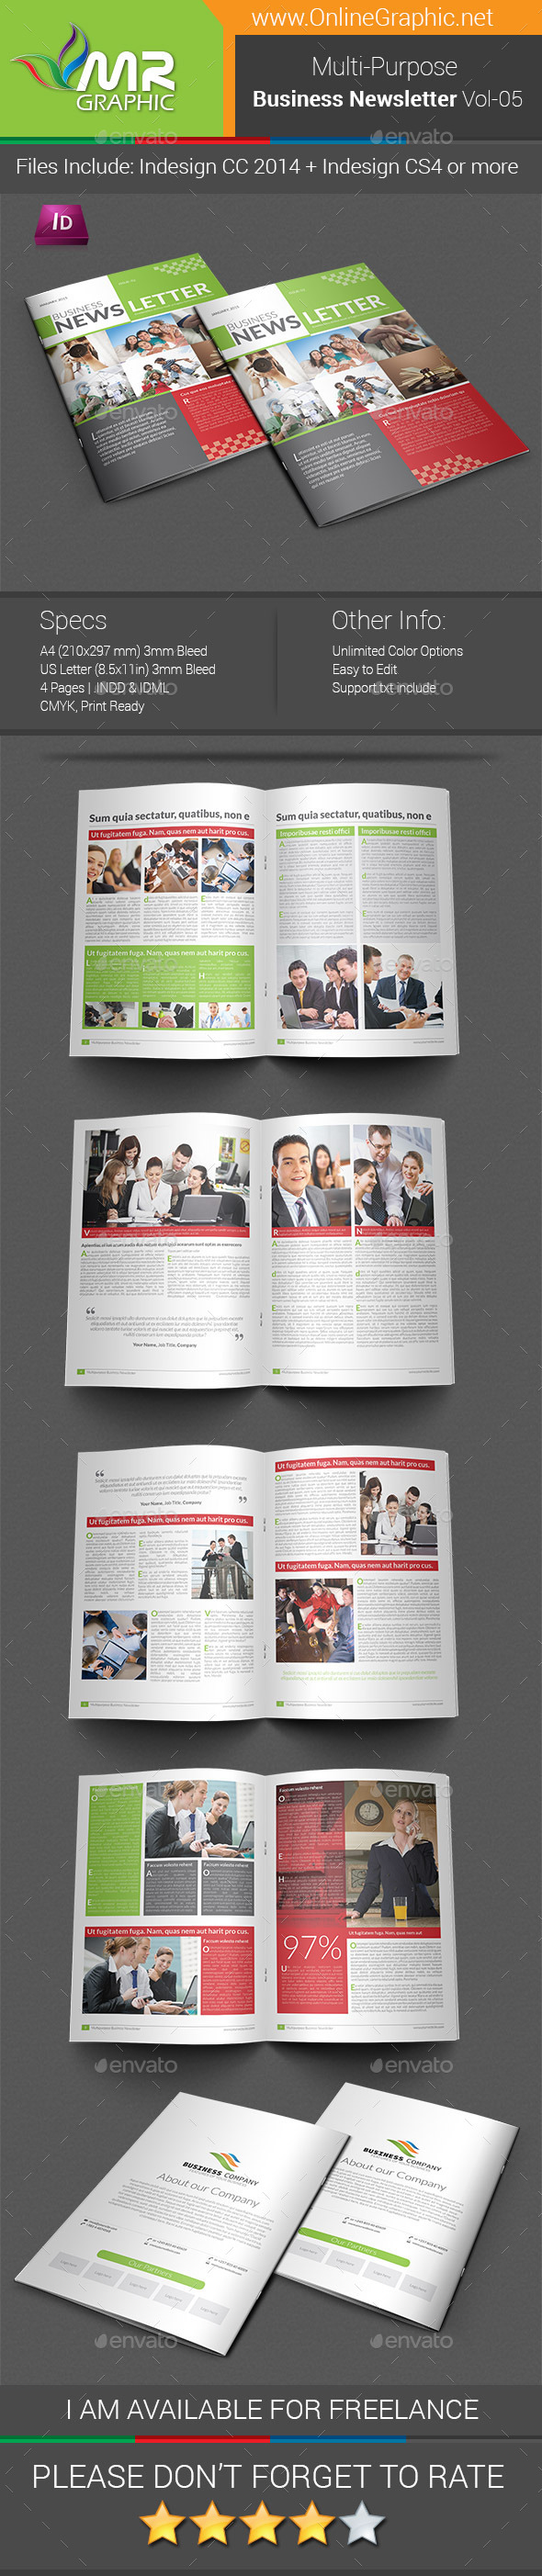 GraphicRiver Multipurpose Business Newsletter Template Vol-05 9965895